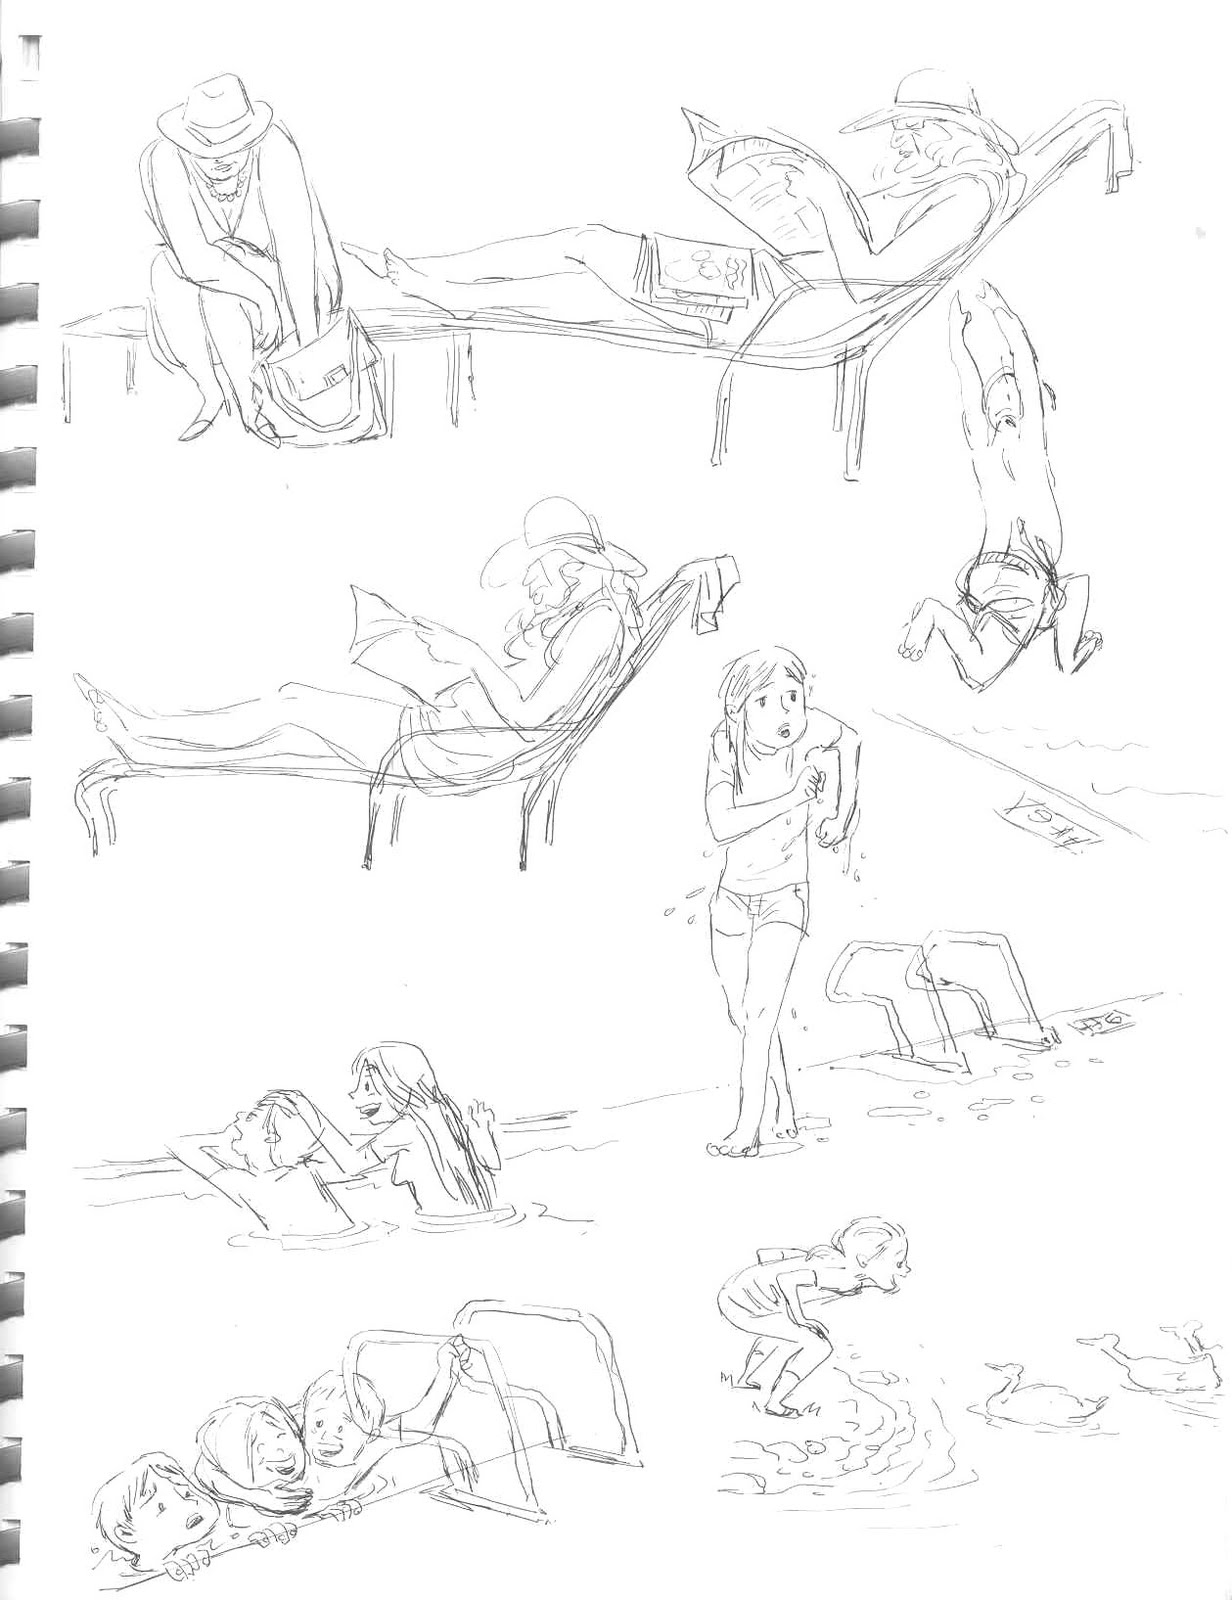 Terry song more swimming pool sketches for Swimming pool sketch